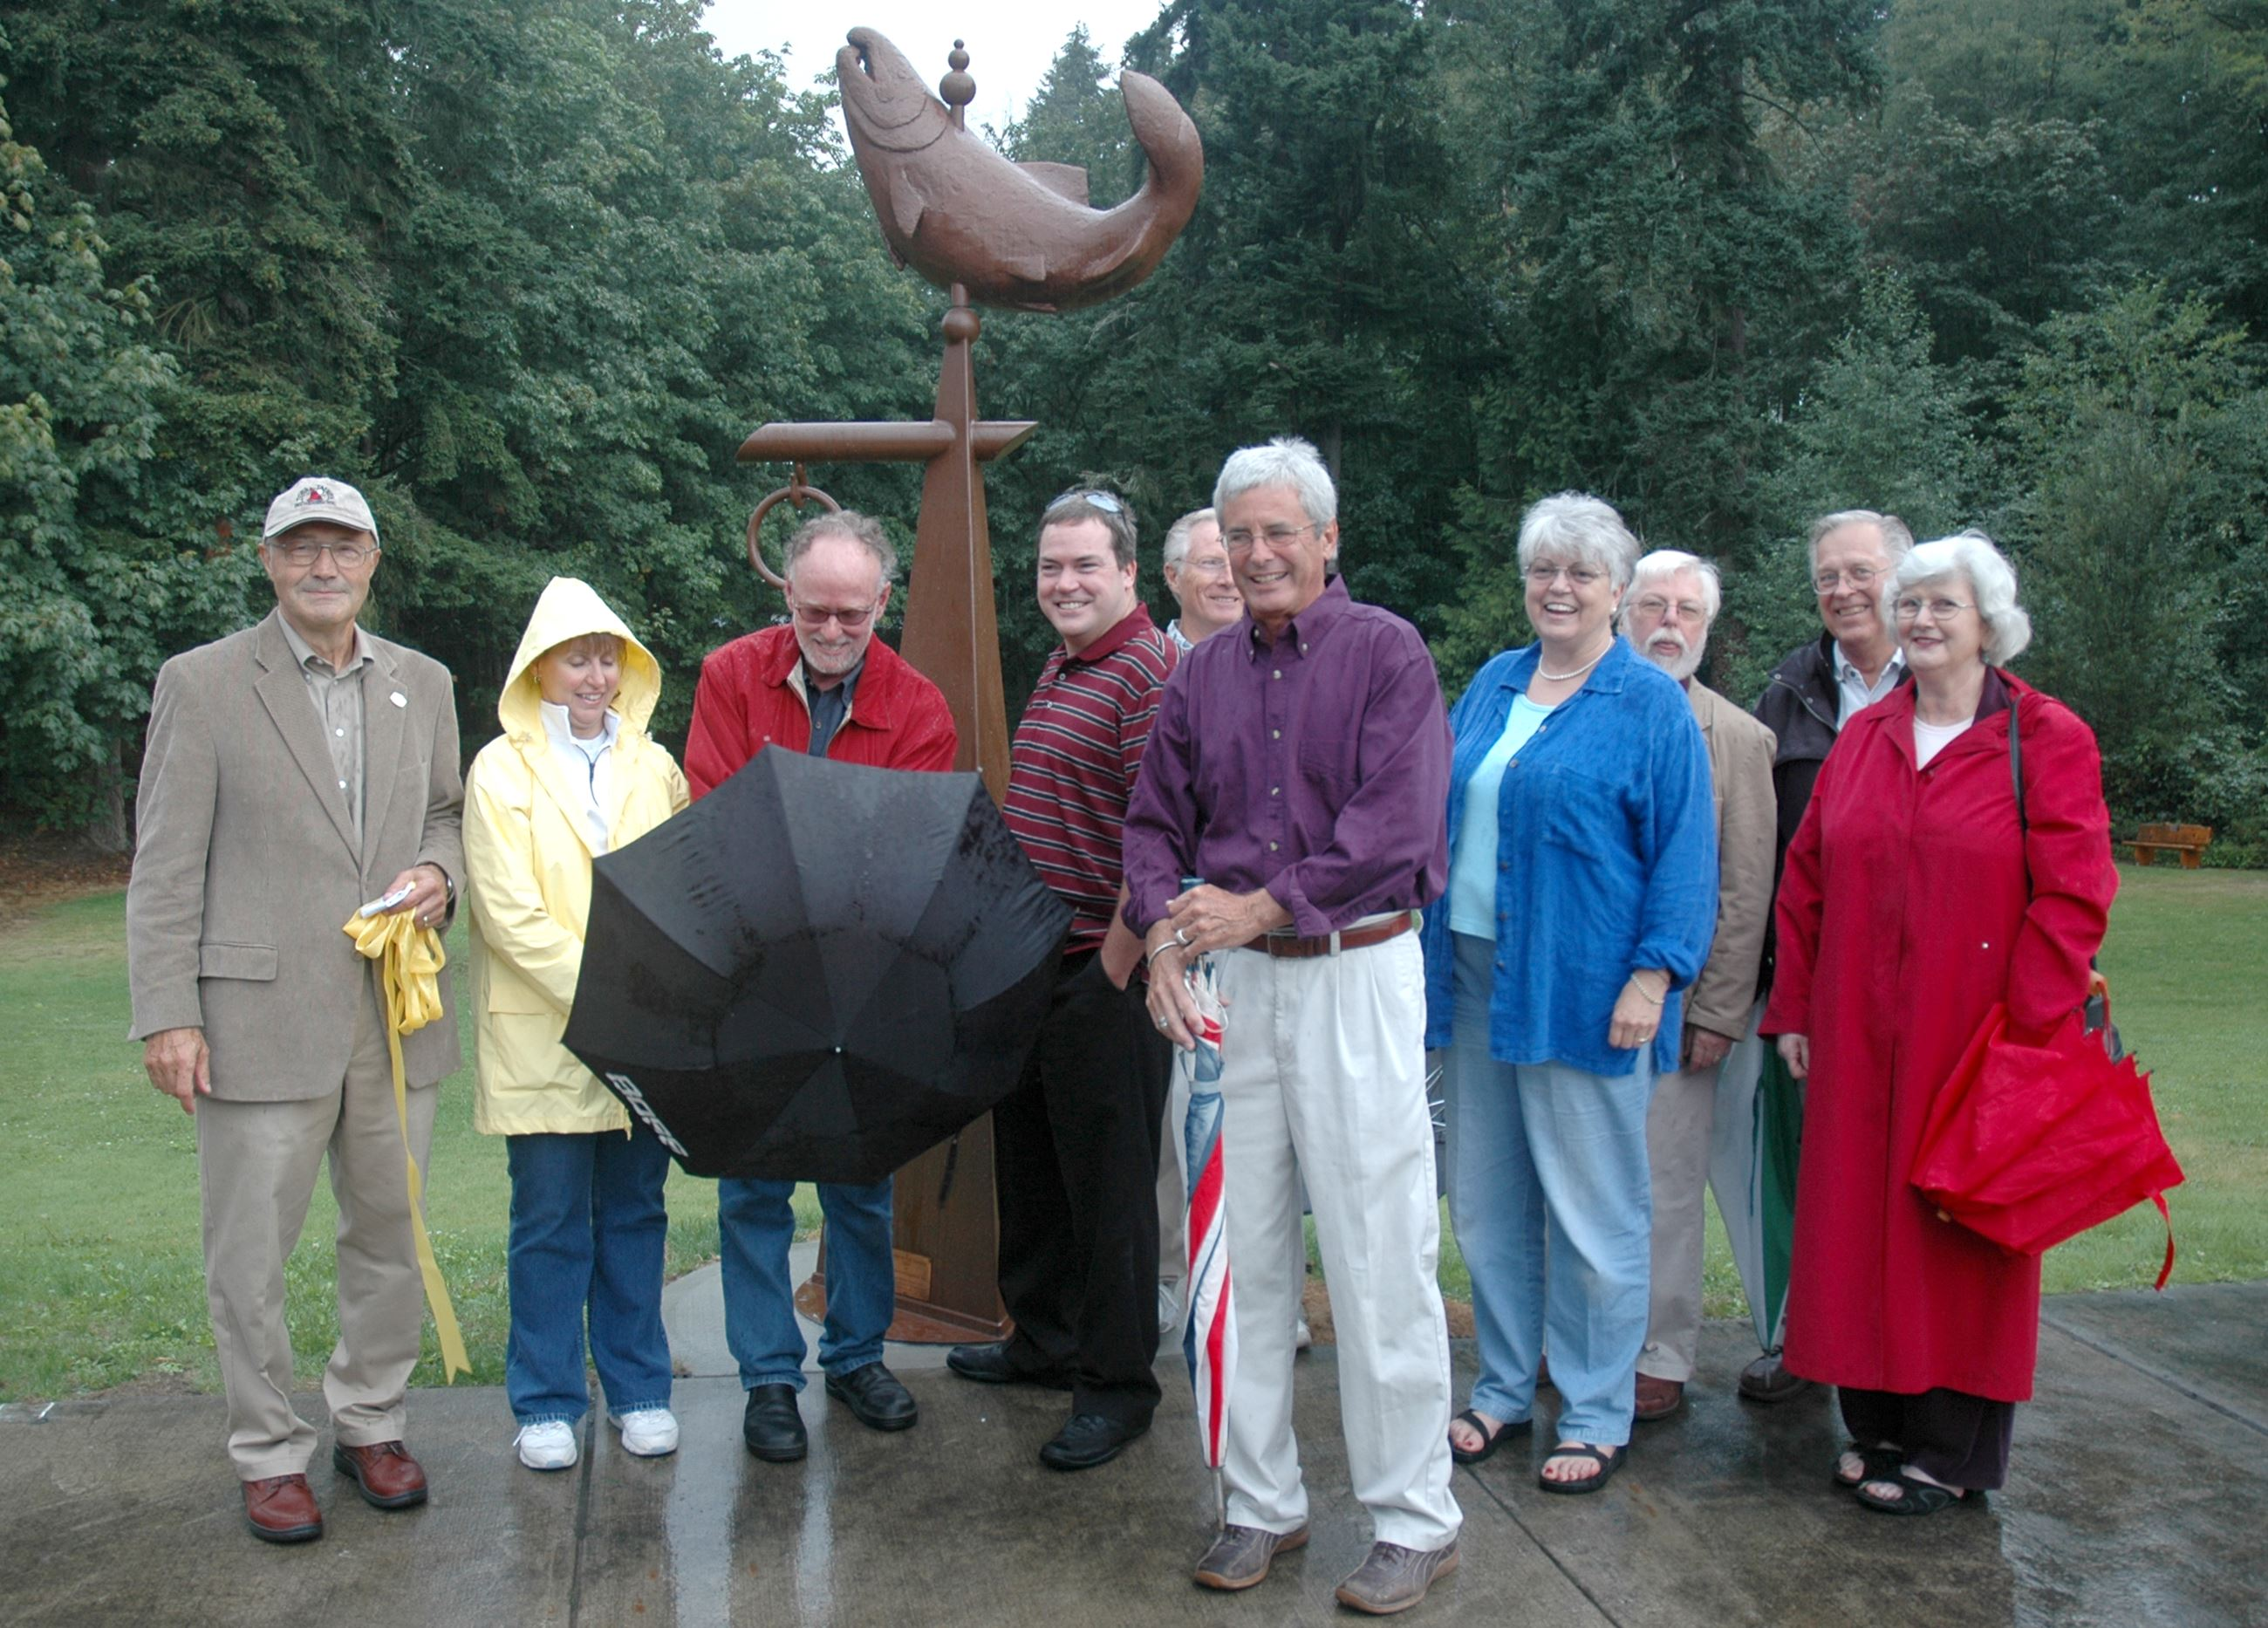 Mayor Chuck Hunter far left, Artist Tom Torrens with umbrella and Ben Isitt stand with other members